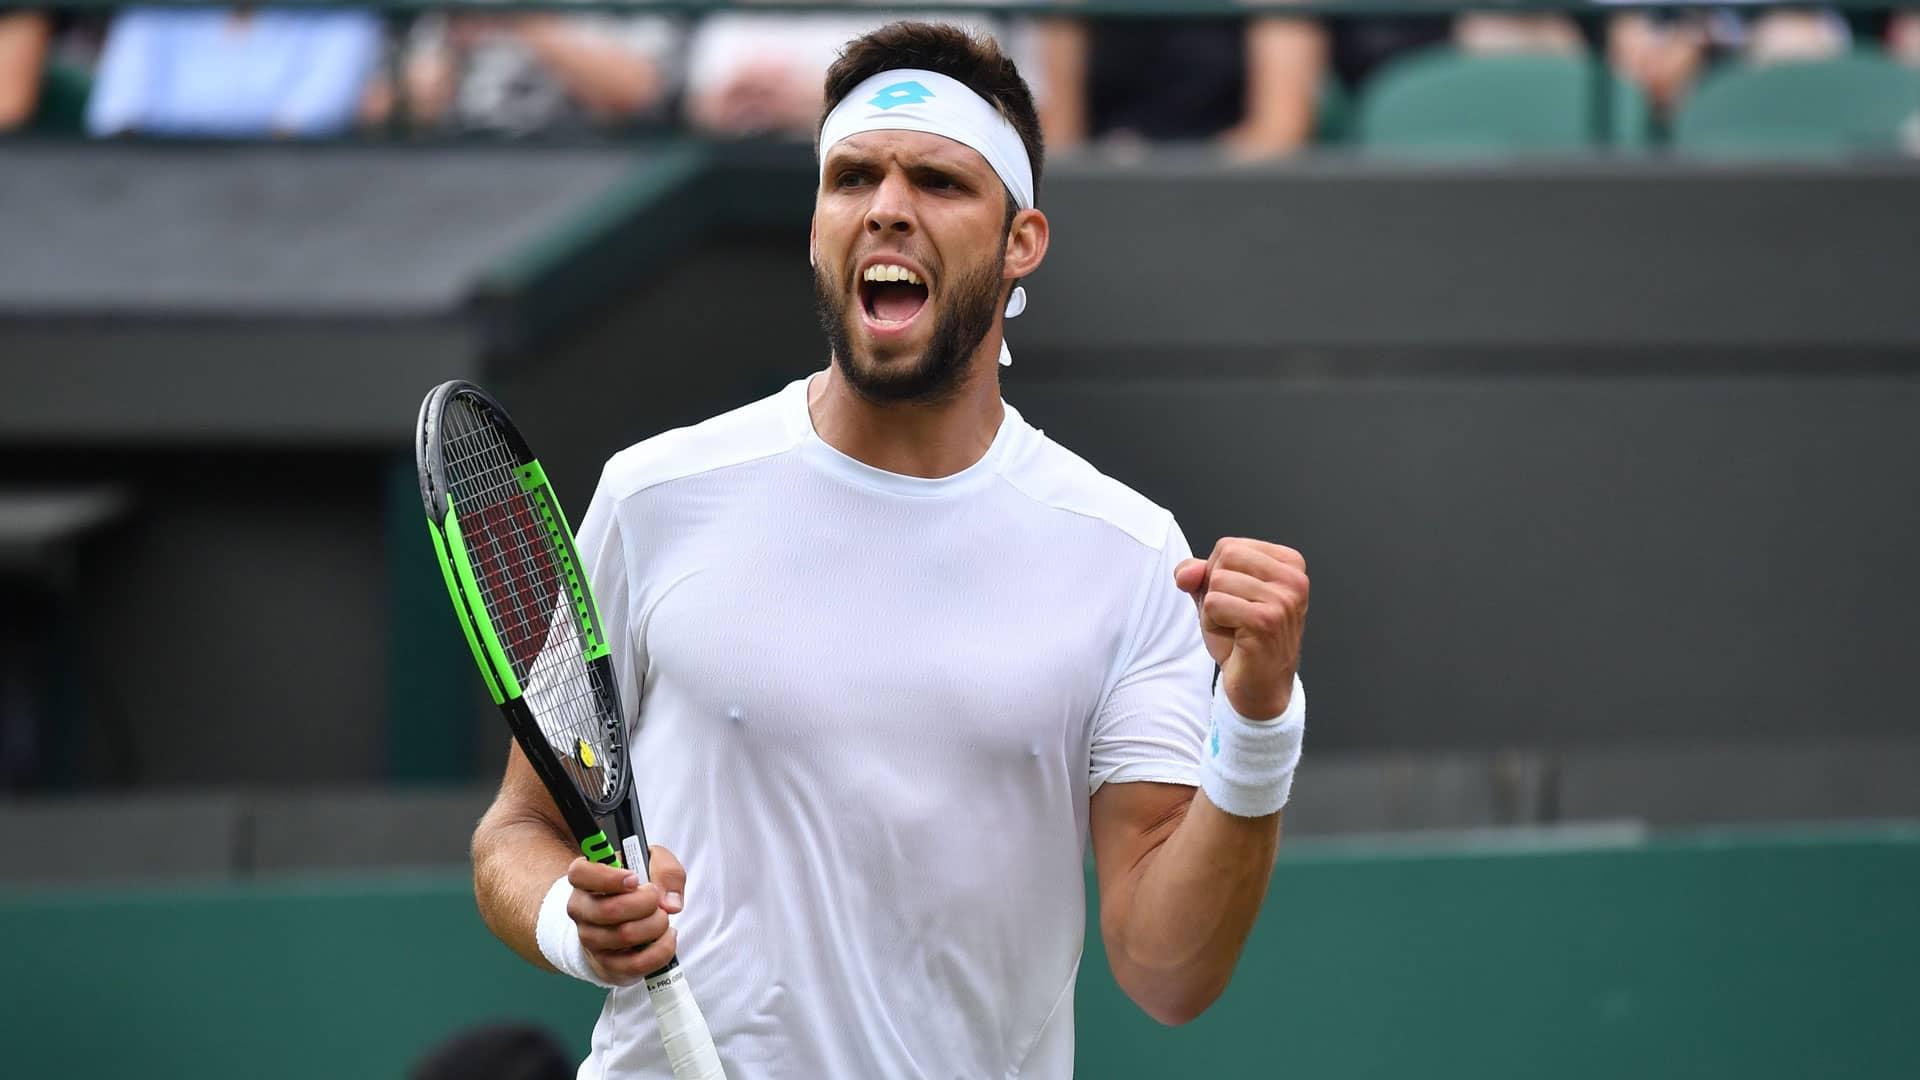 Jiri Vesely beats Alexander Zverev on Monday at Wimbledon